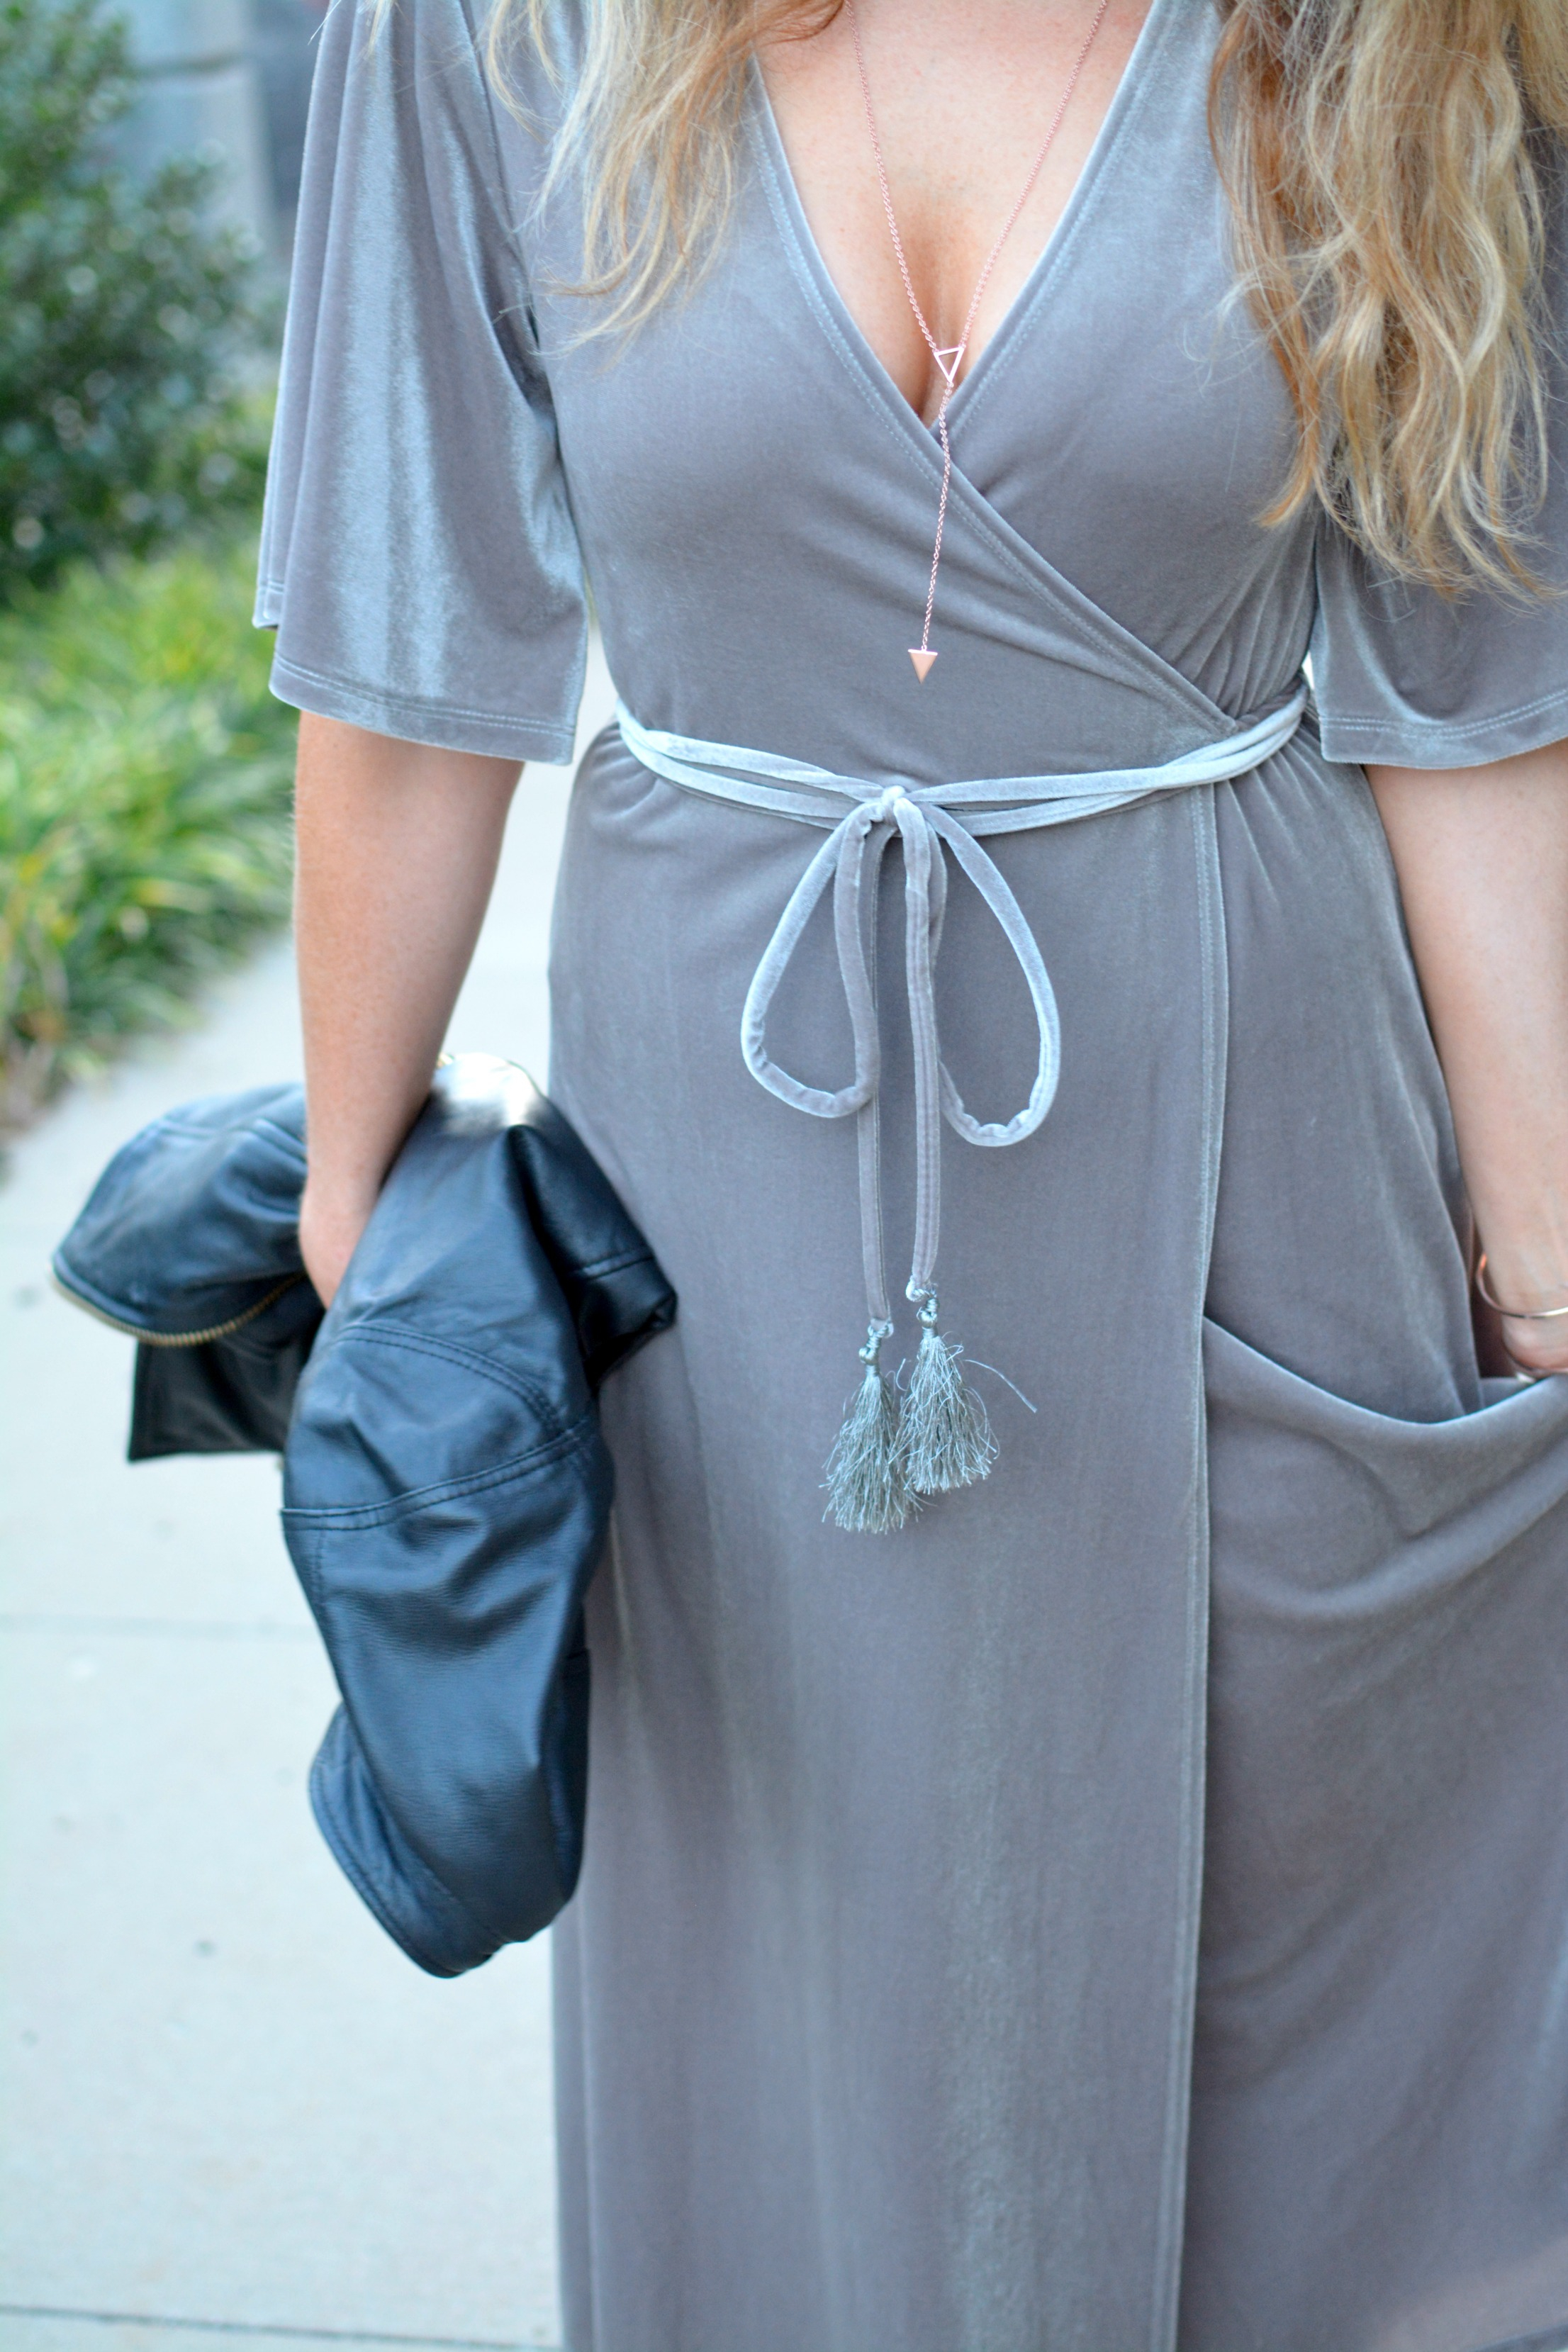 Ashley from LSR in a gray velvet dress